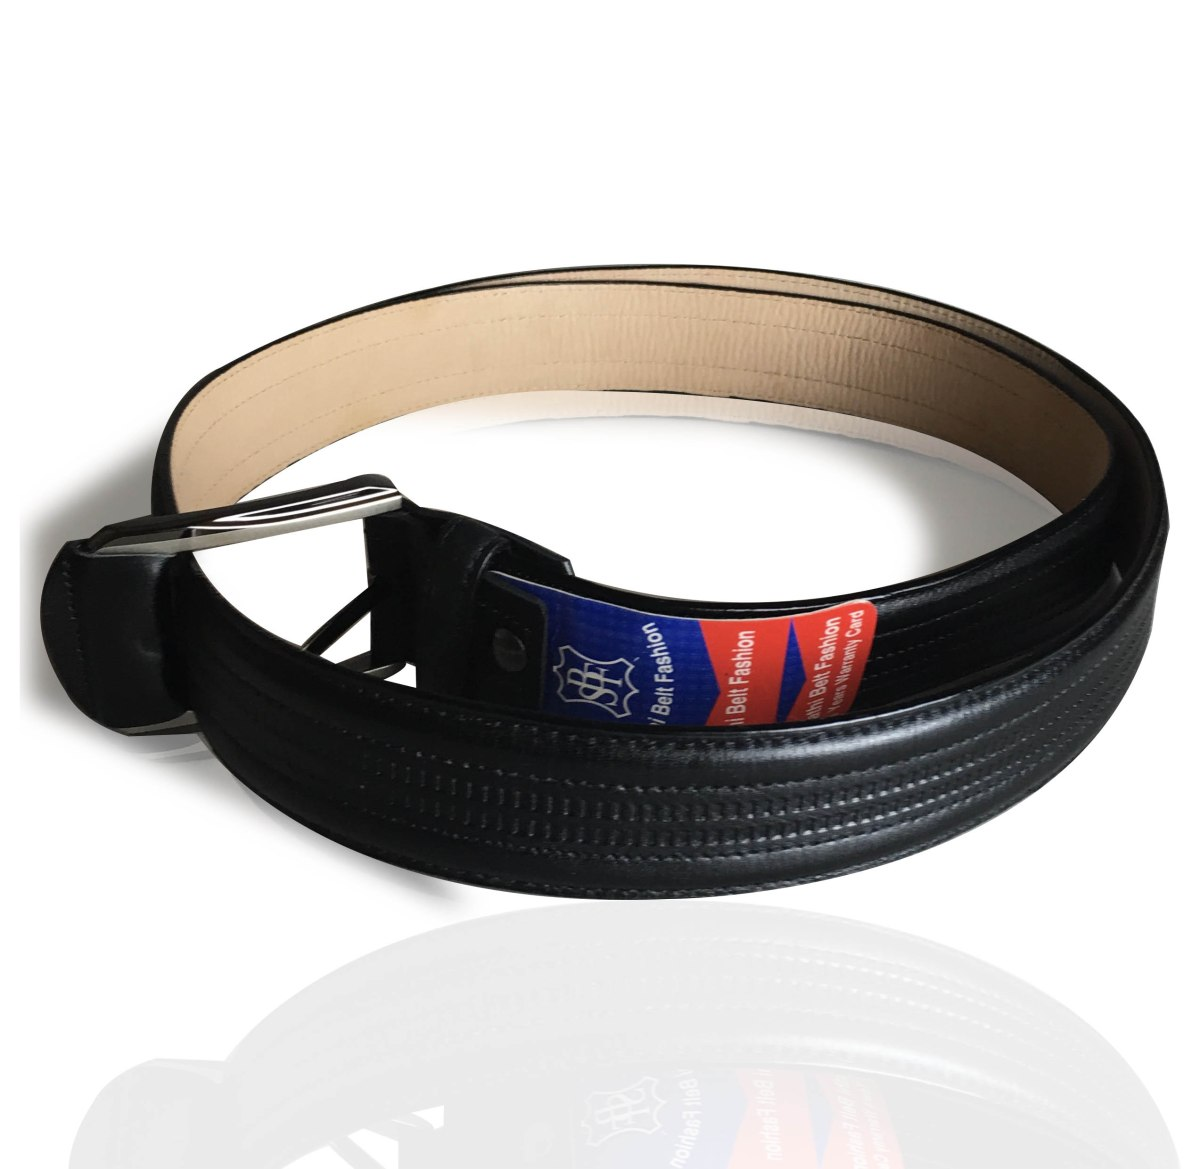 CLASSIC LEATHER BELT FOR MEN'S